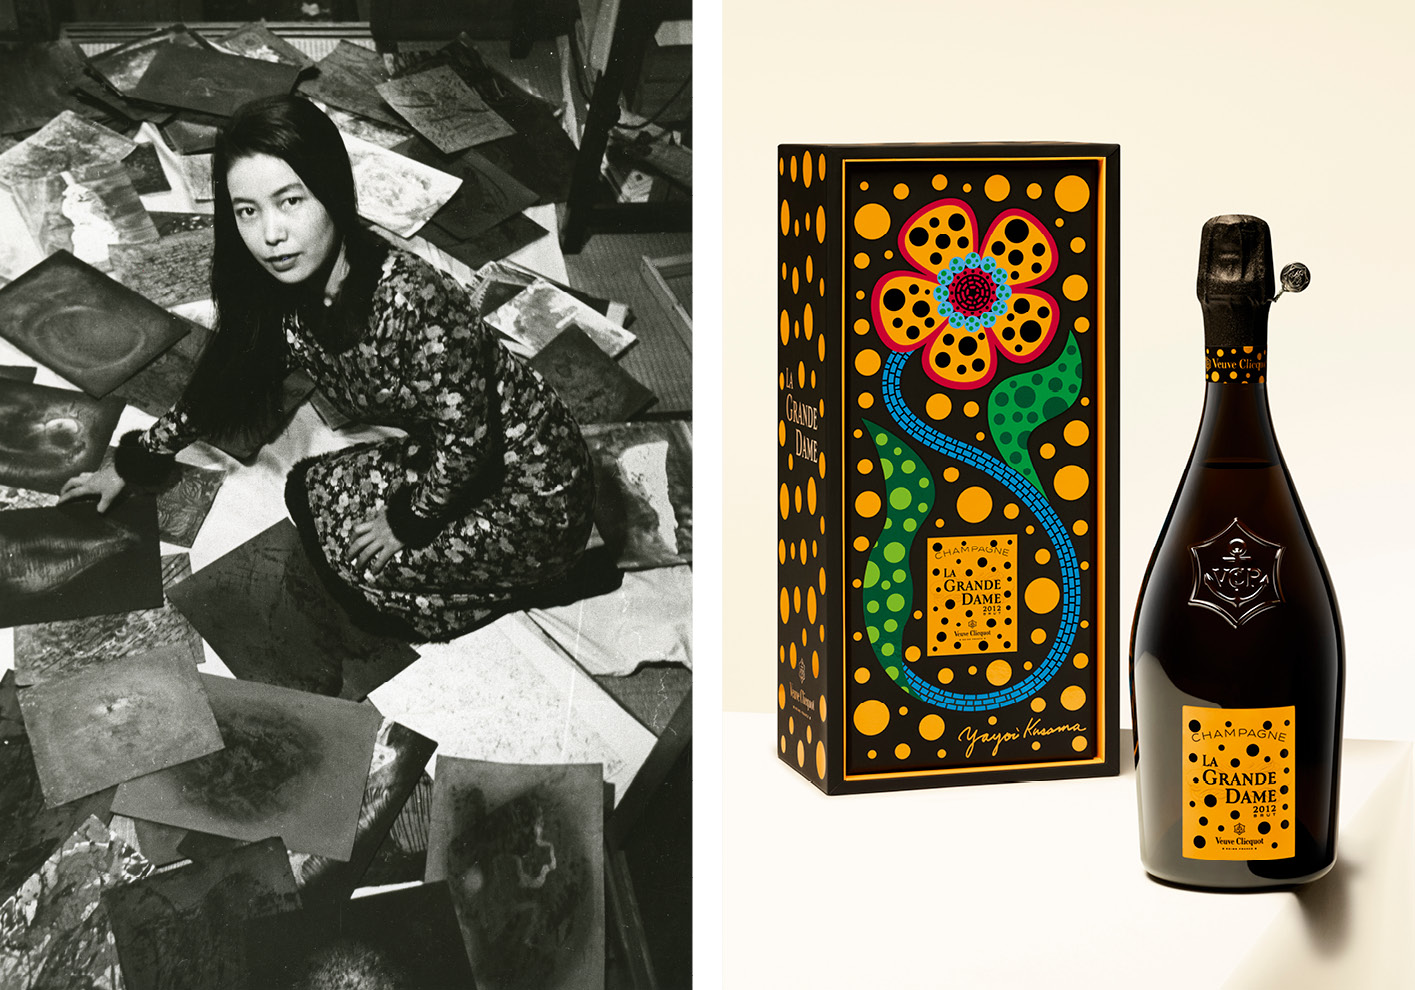 This is the second time Kusama has worked with Veuve Clicquot on bringing her art to the storied champagne house